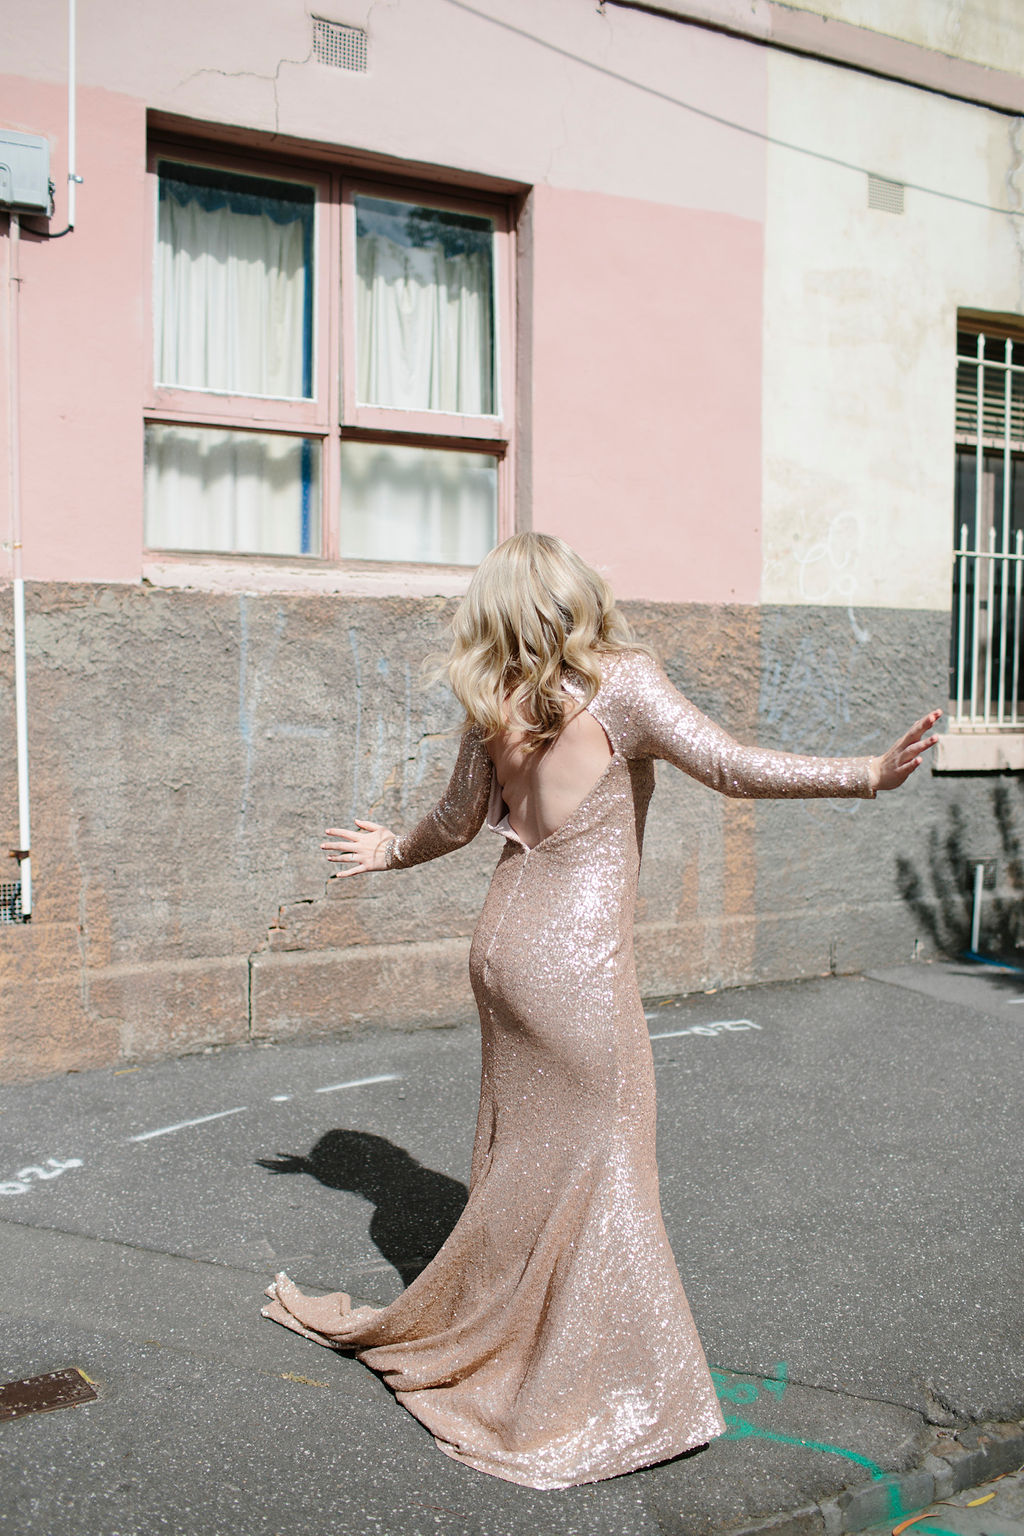 It's Beautiful Here Collingwood Fitzroy wedding two wives lesbian elopement Australia Dancing With Her magazine